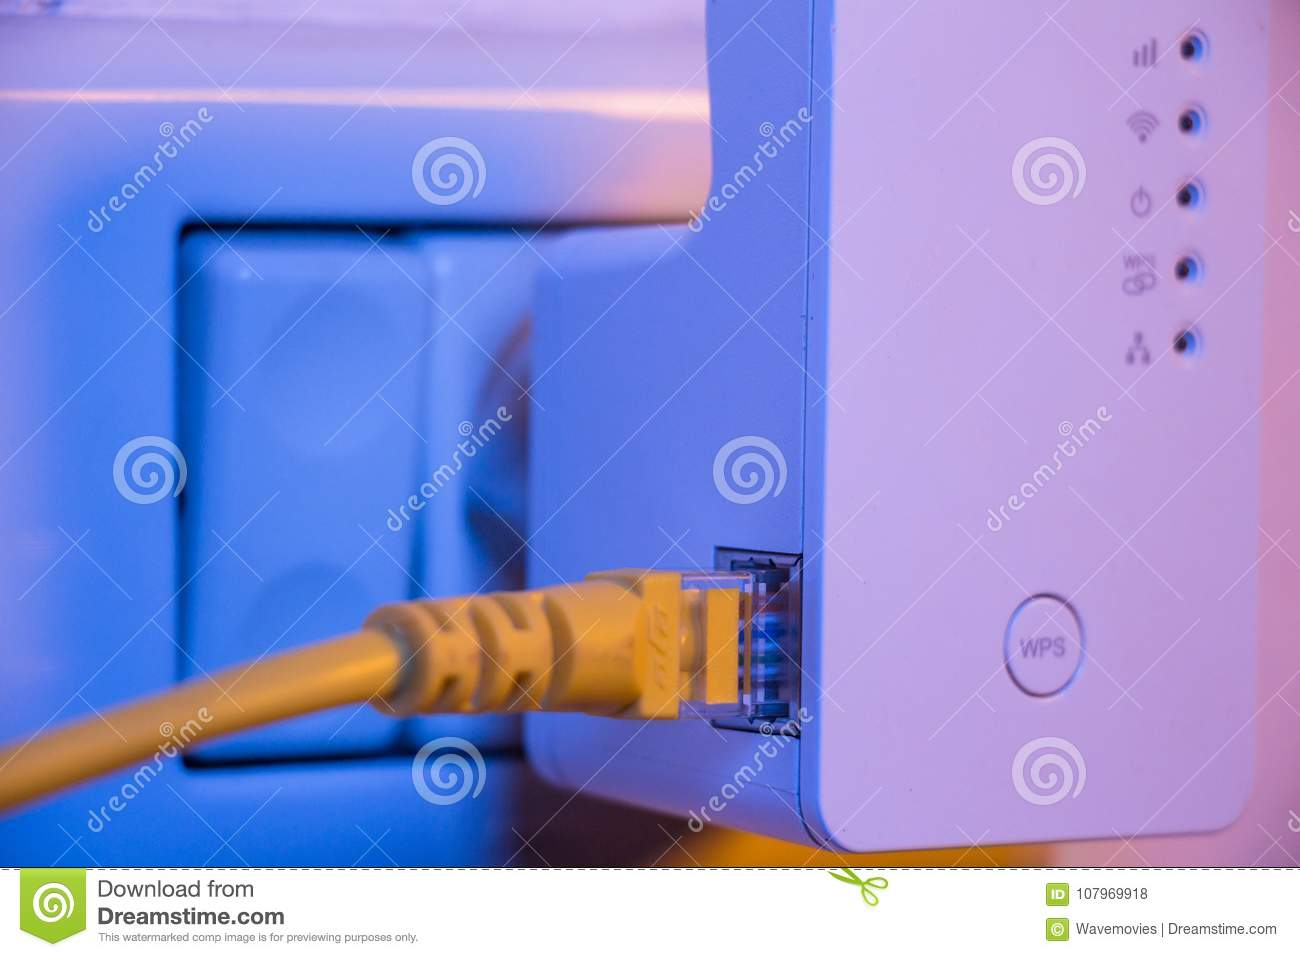 wifi extender in electrical socket on the wall ethernet cab wifi extender in electrical socket on the wall ethernet cable plugged in the device is in access point mode that help to extend wireless network in